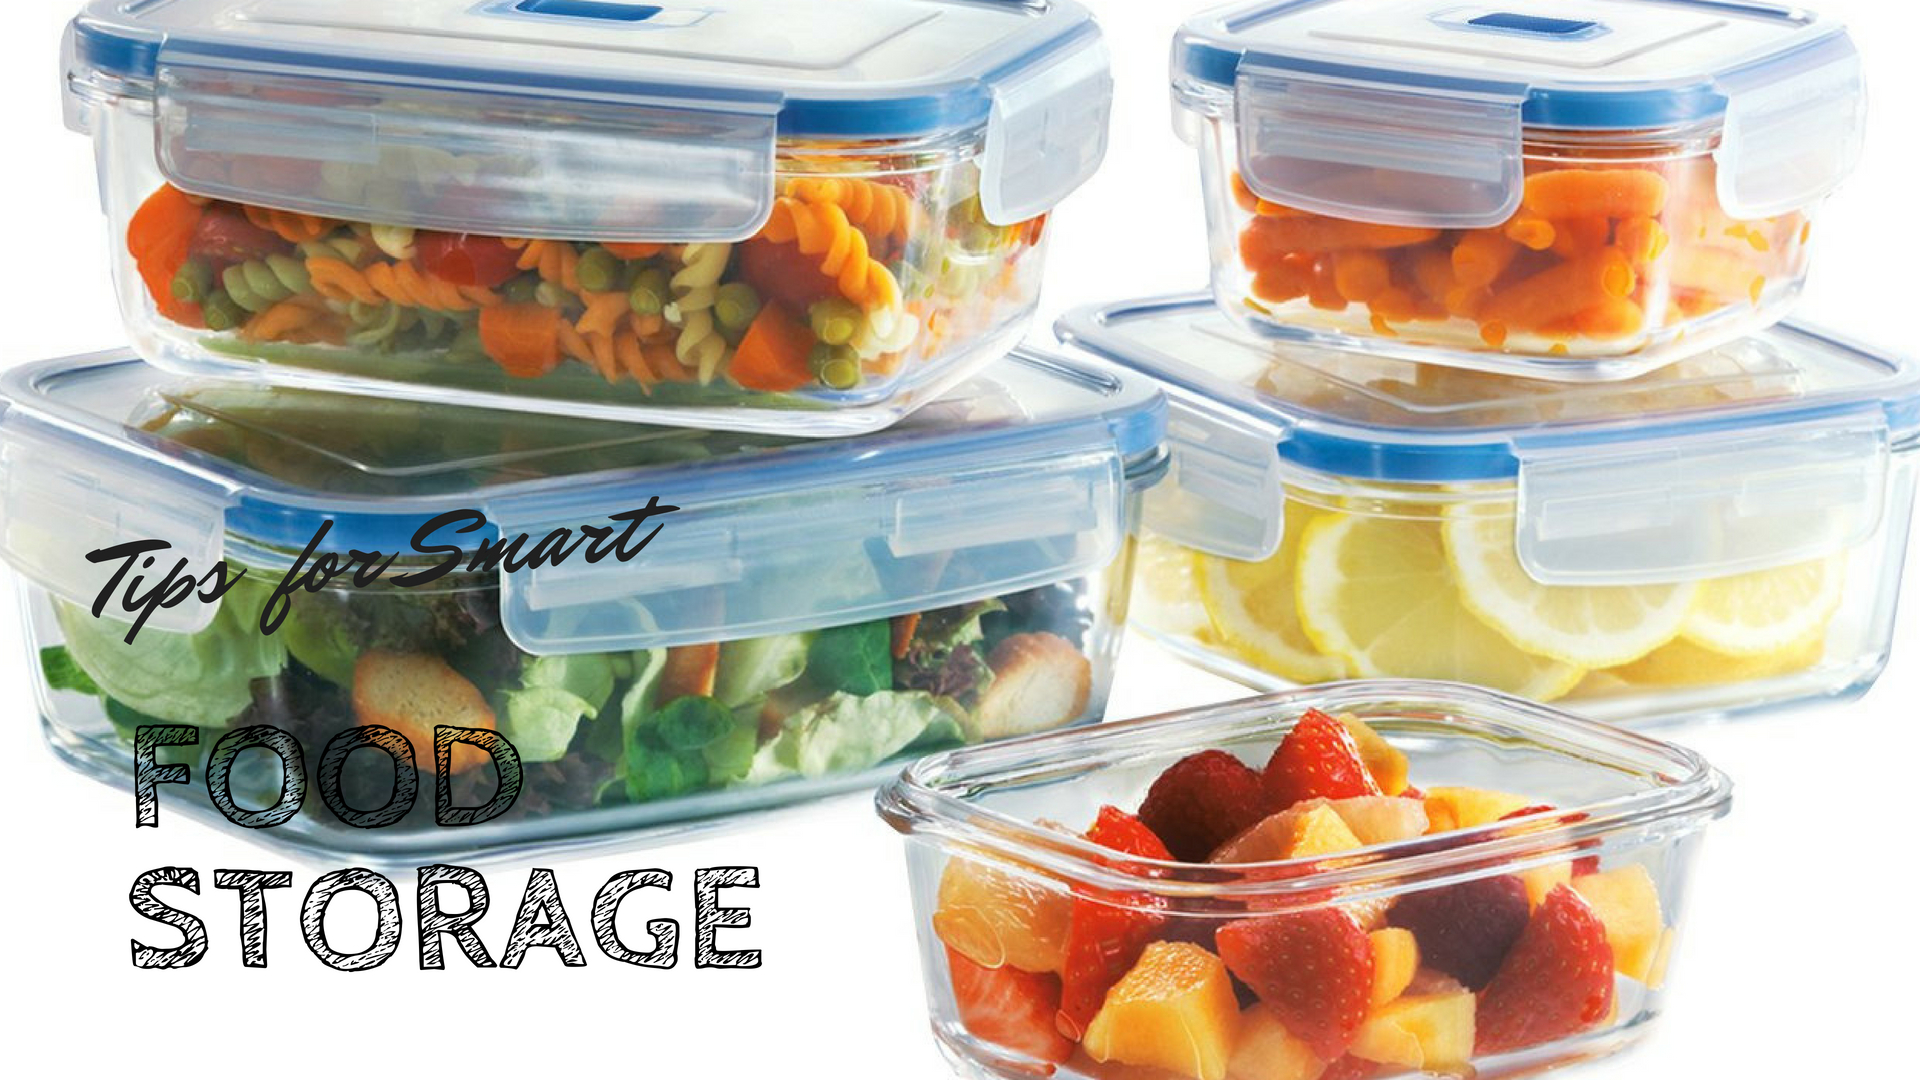 How to Store the Food in your Fridge?